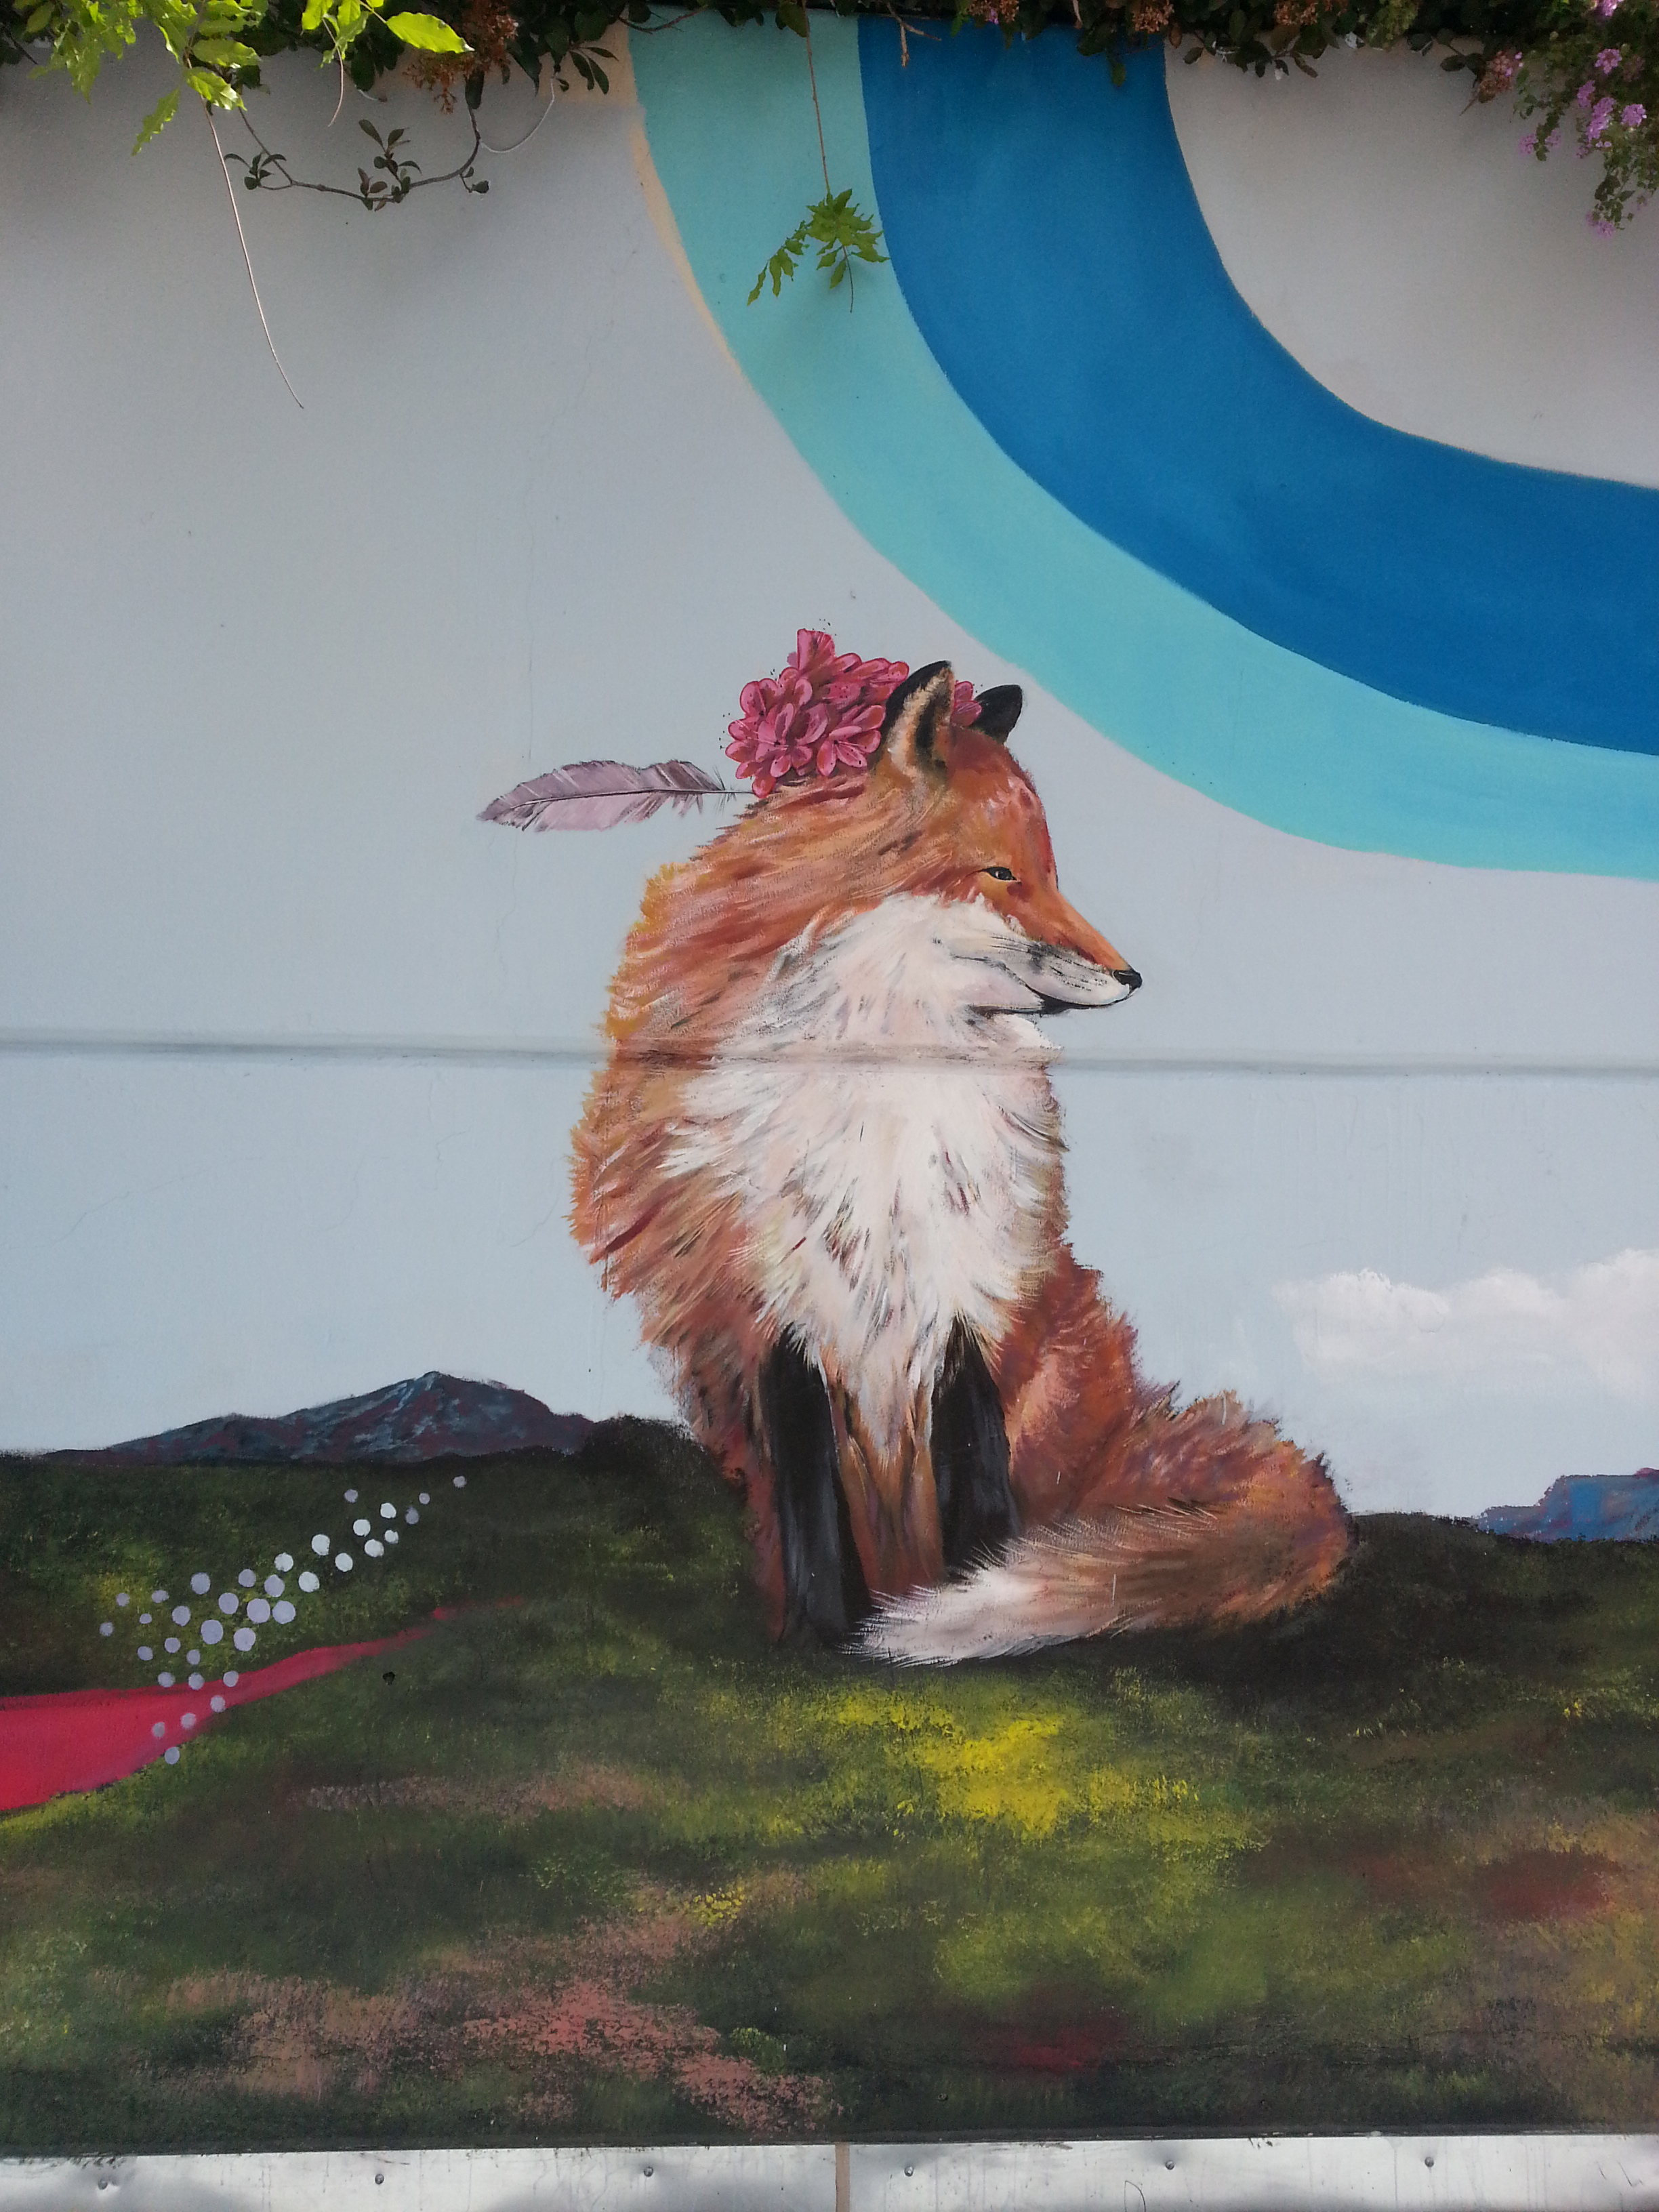 The Fox of the Mural